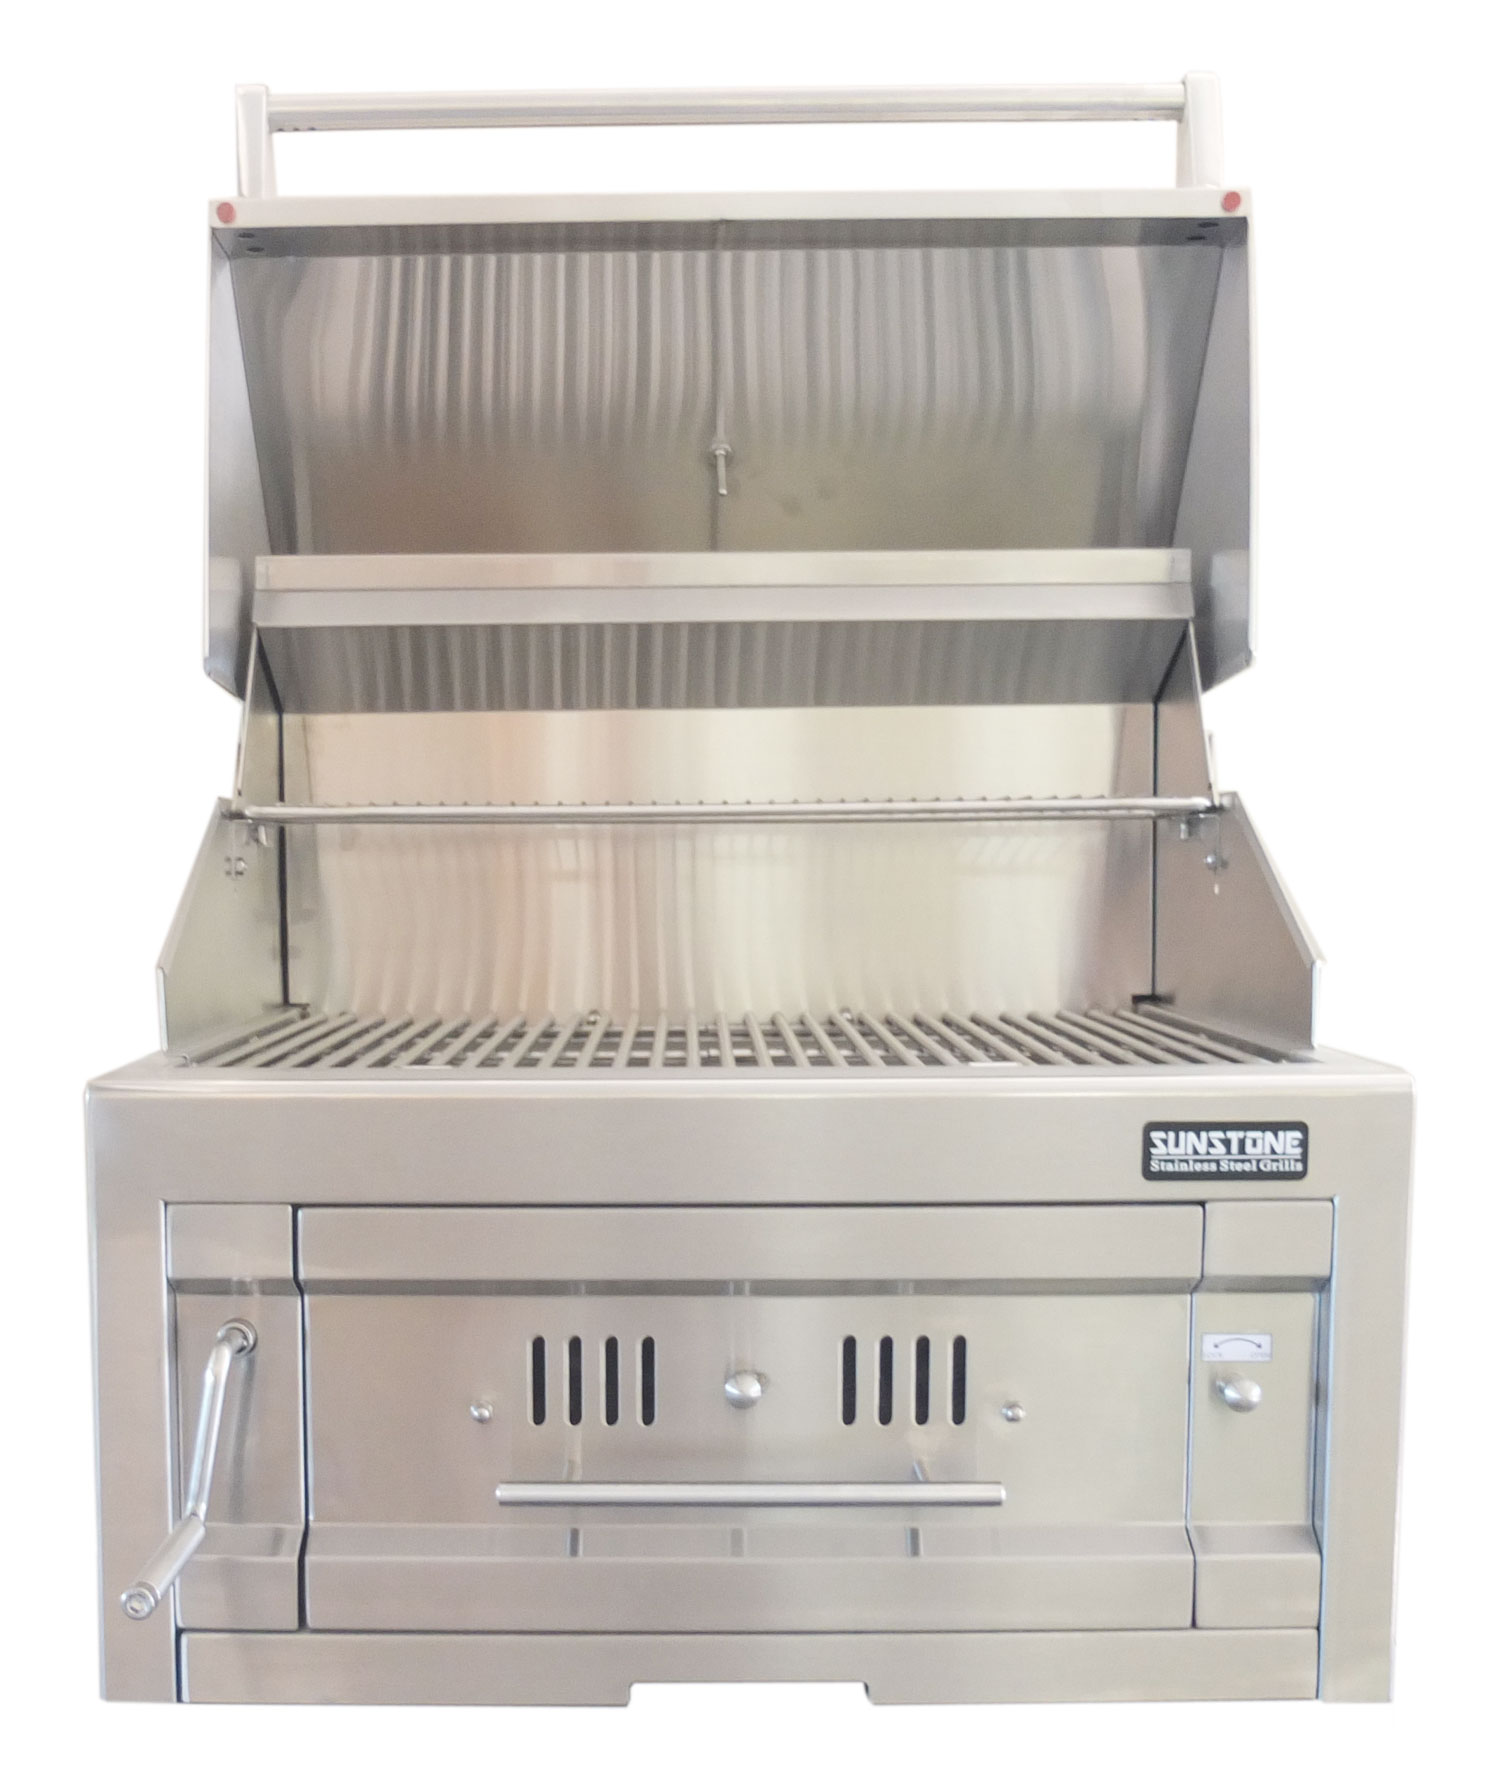 Sunstone 28 Quot Dual Zone Stainless Steel Charcoal Grill